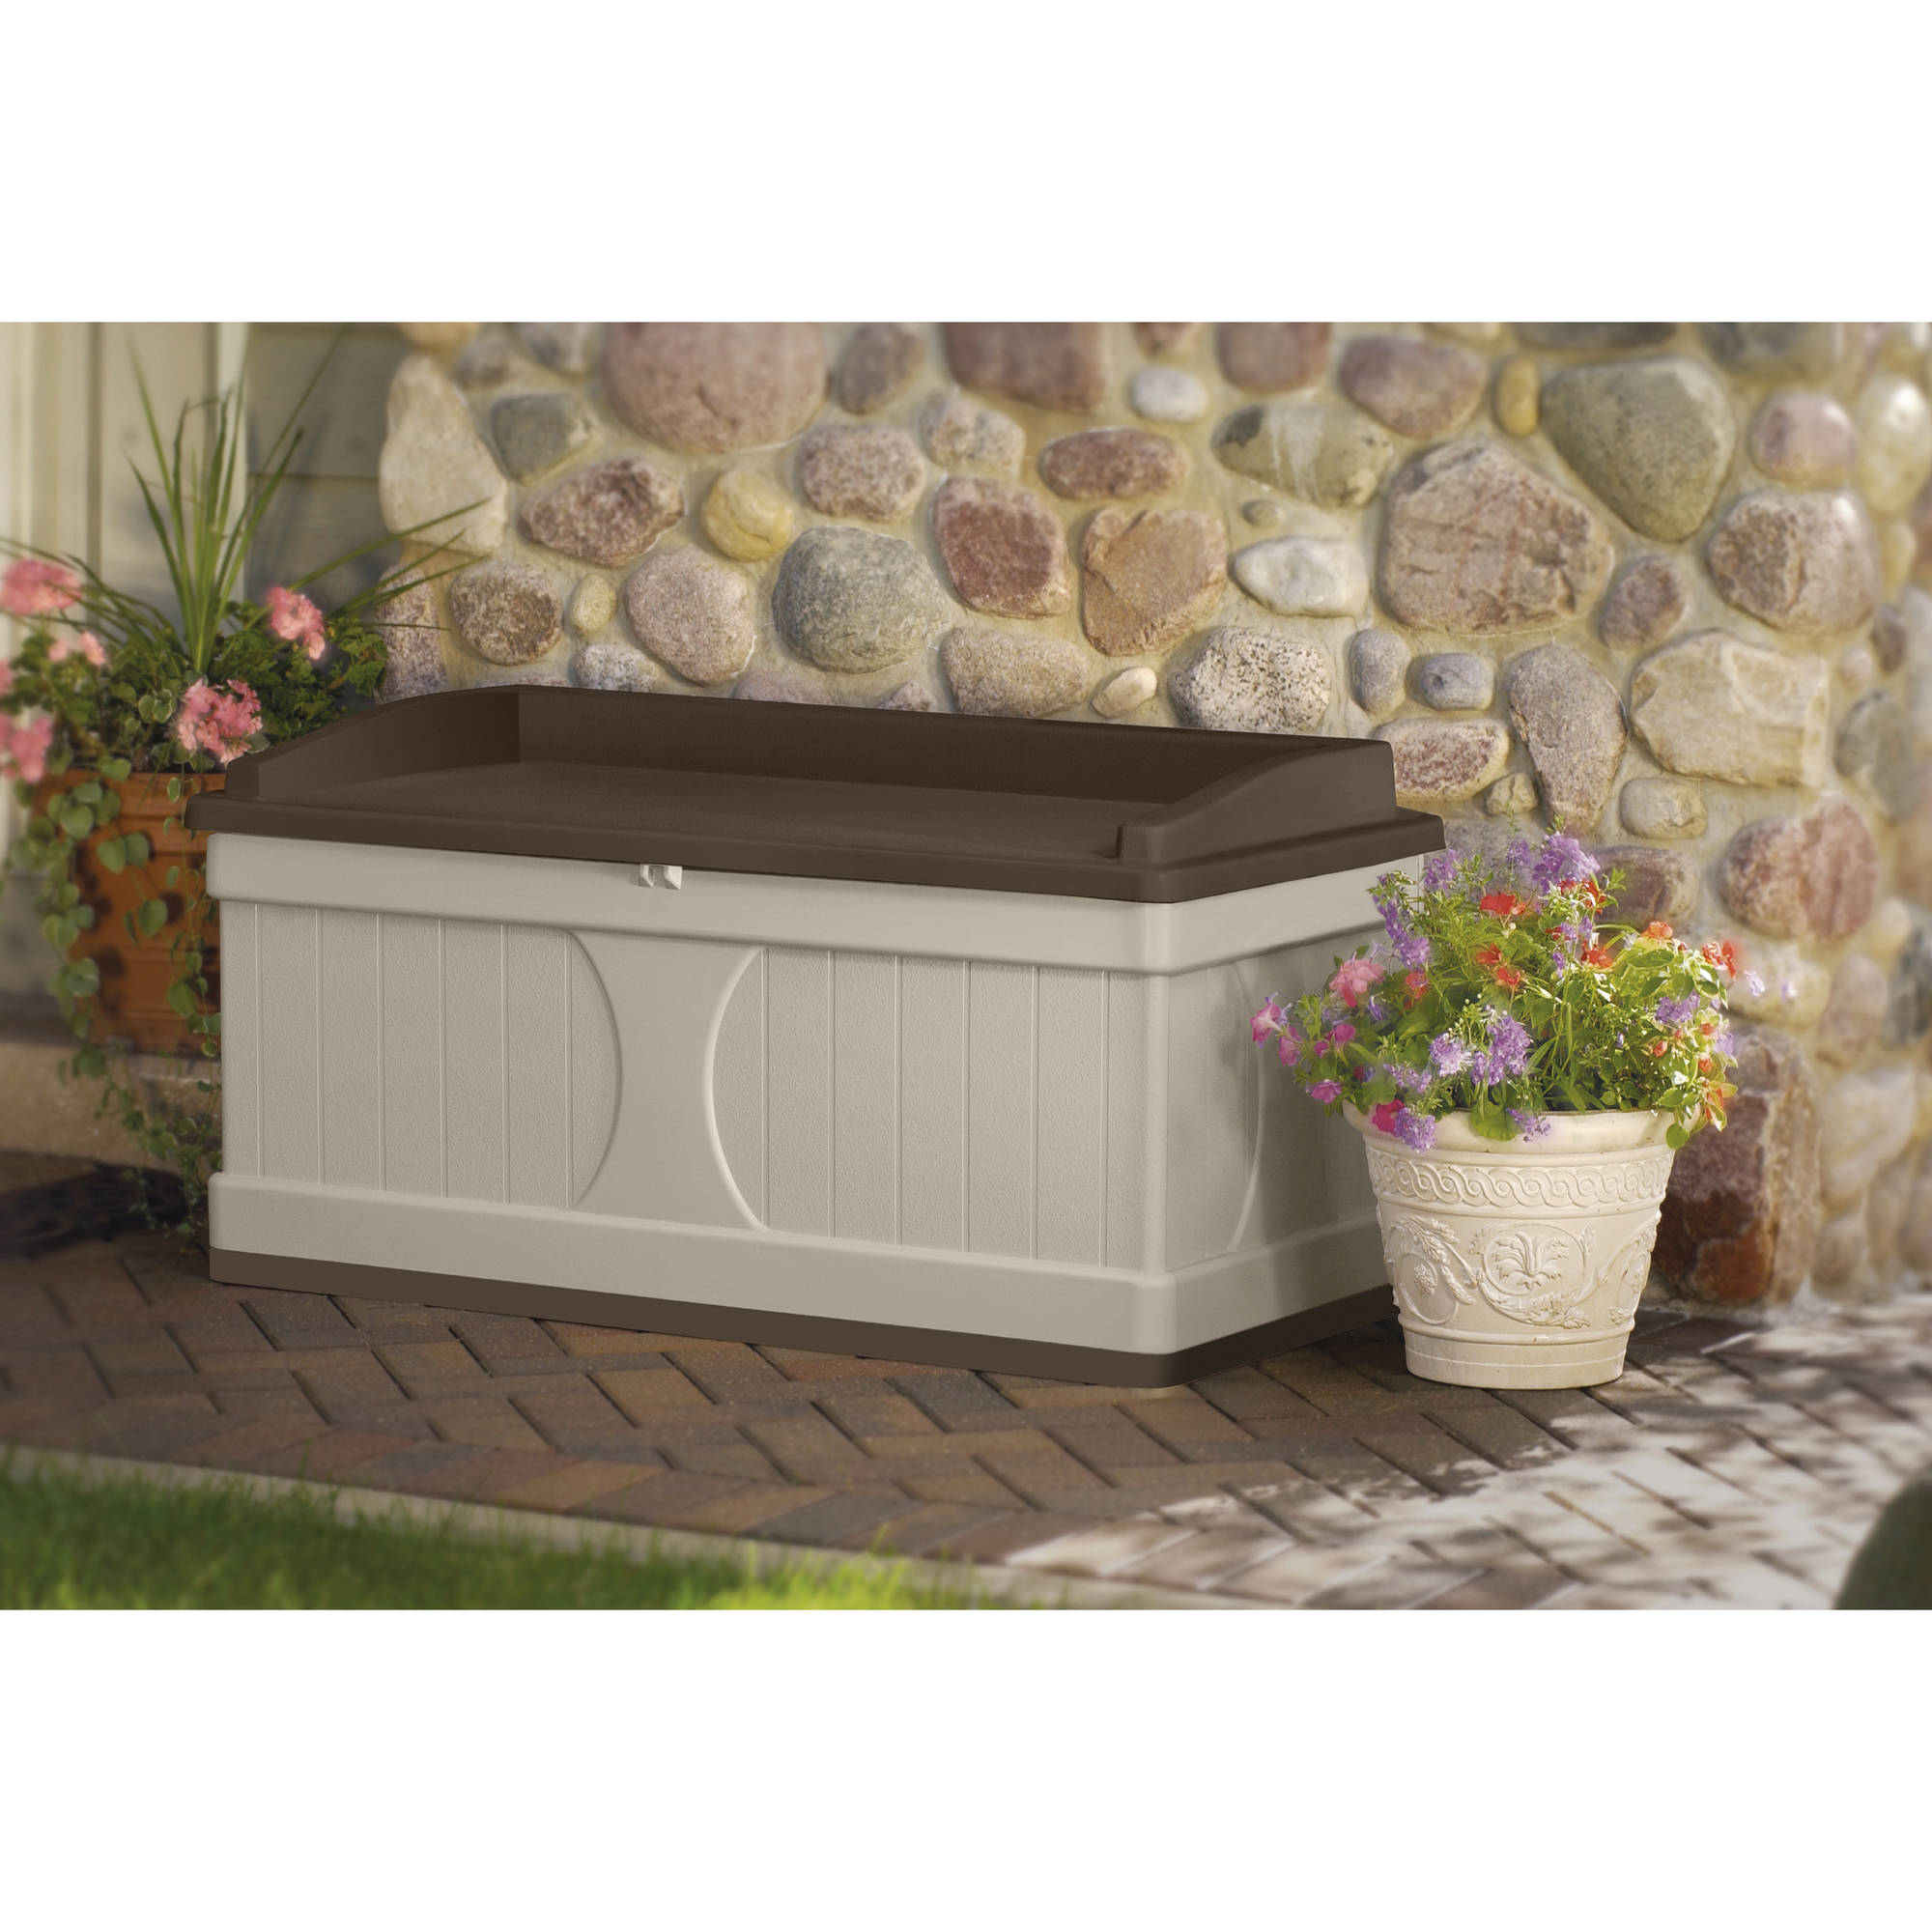 Suncast 99 Gallon Light Taupe and Mocha Resin Storage Seat Deck Box DB9500CT